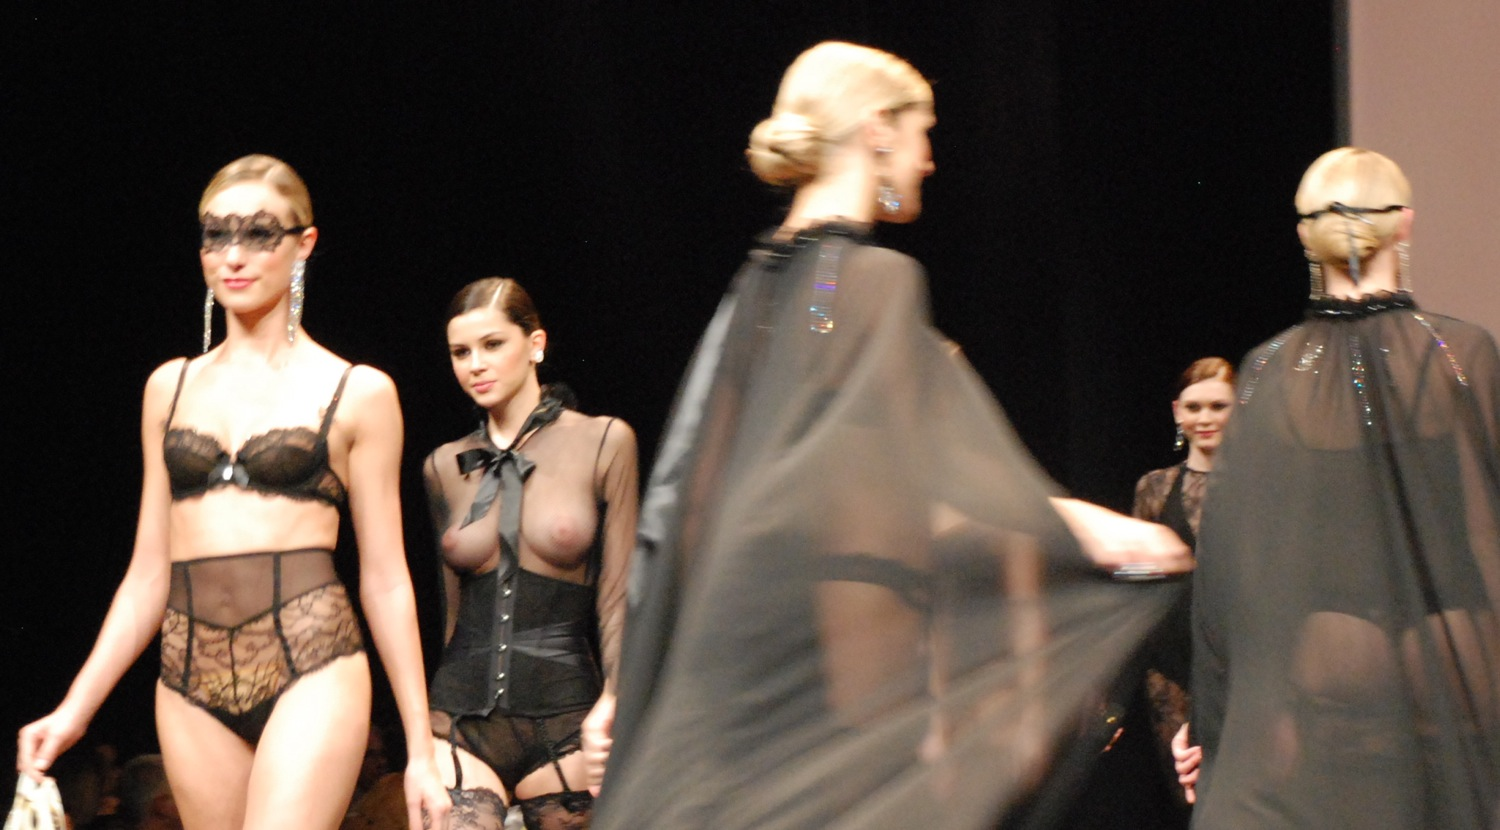 Salon de la Lingerie 2011  The Lise Charmel Catwalk be8f5d8ba